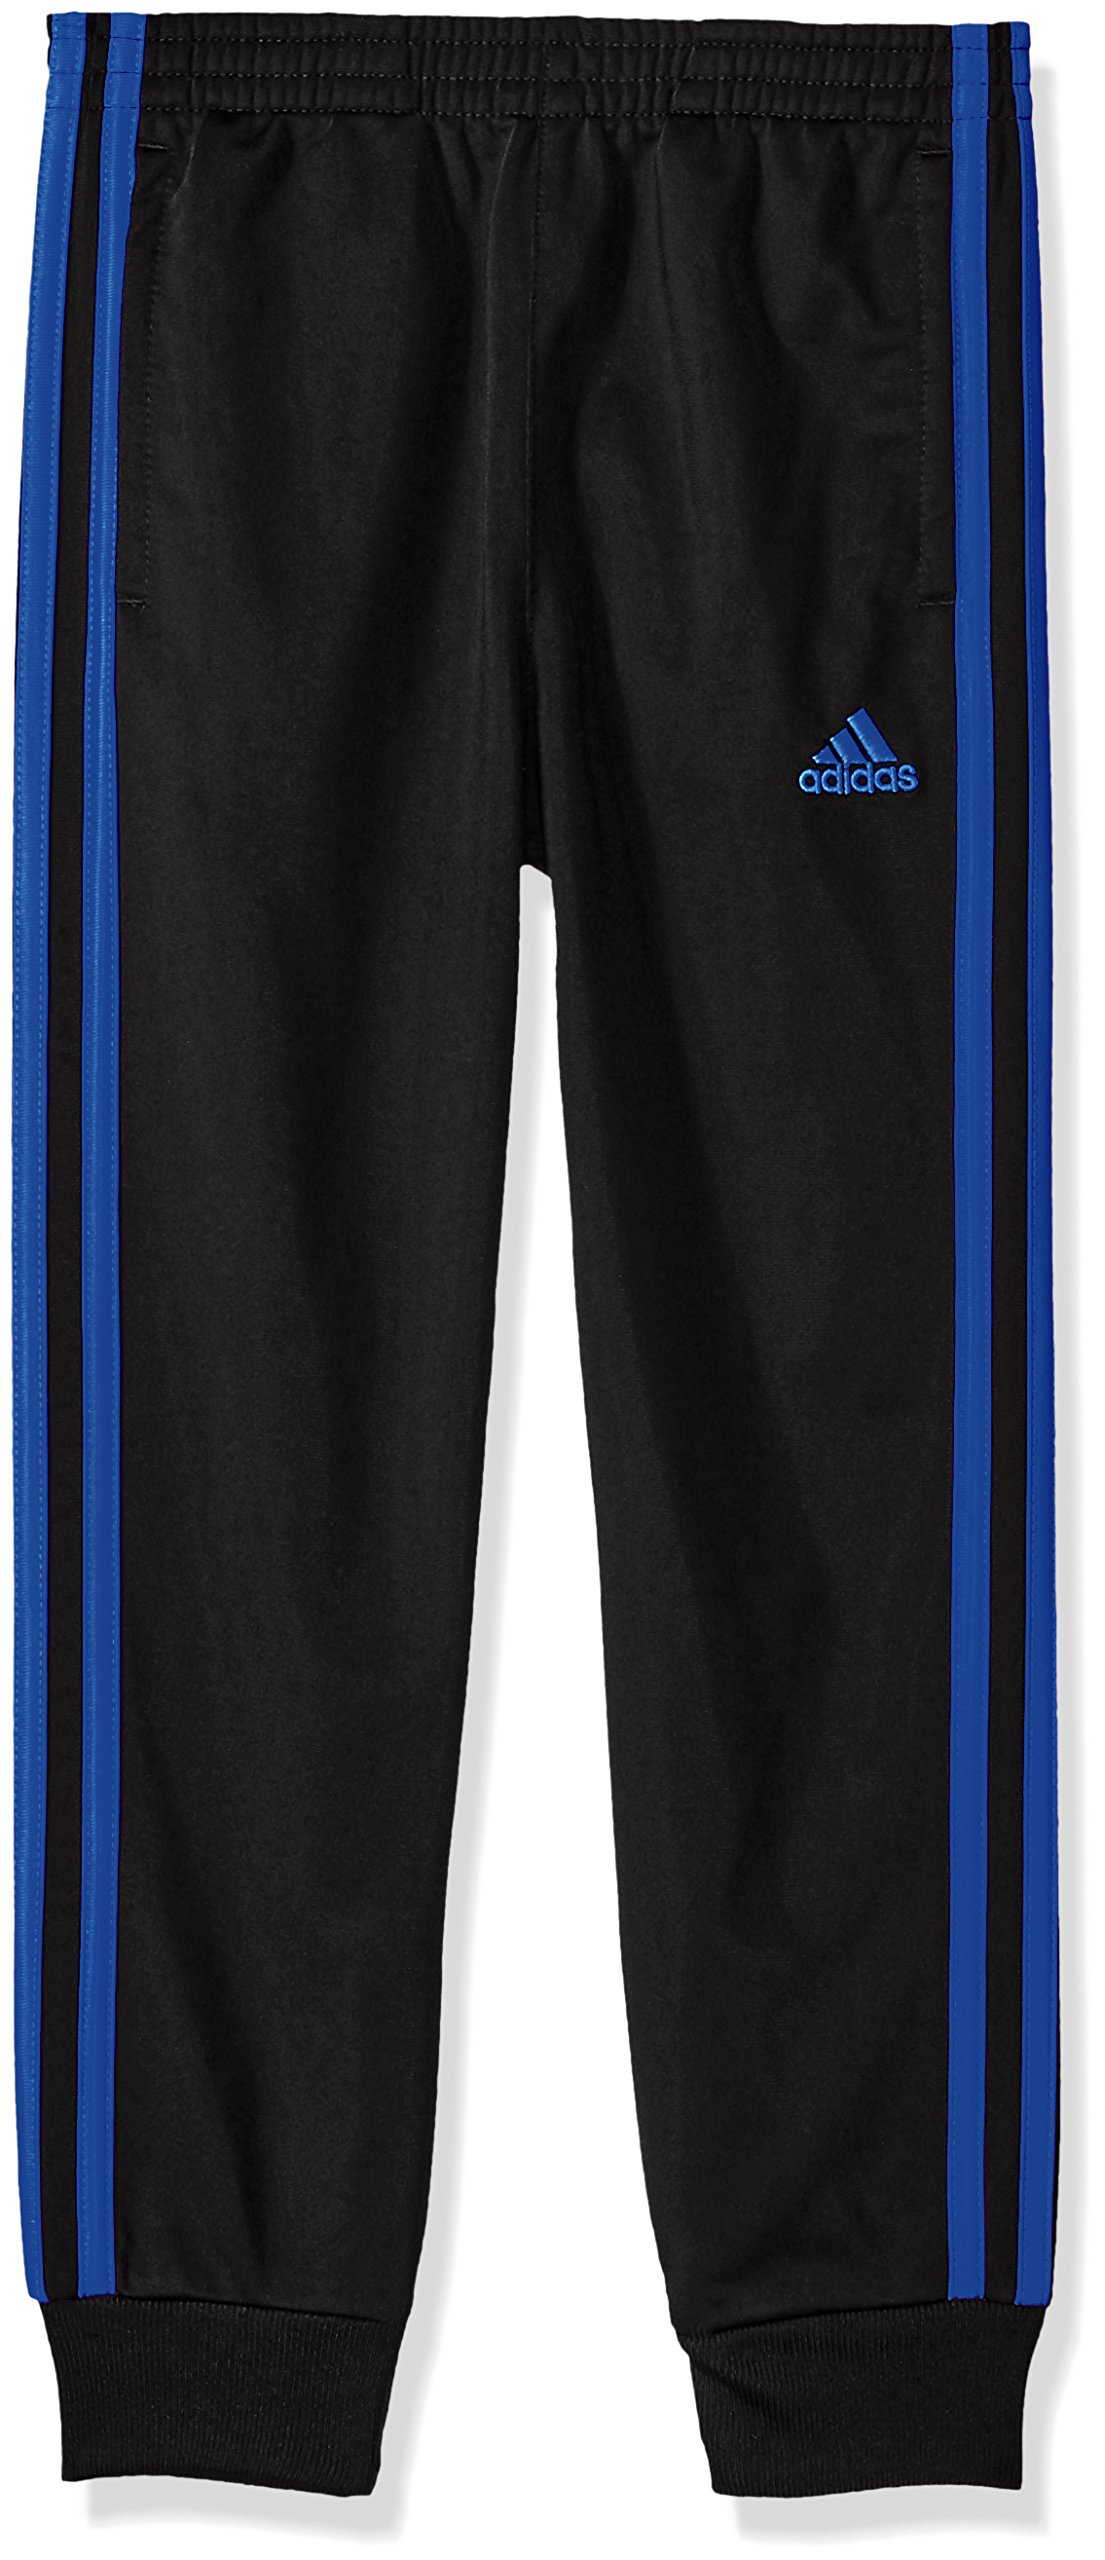 adidas Boys' Little Oldschool Jogger Pant, Black/Blue OS, 4 by adidas